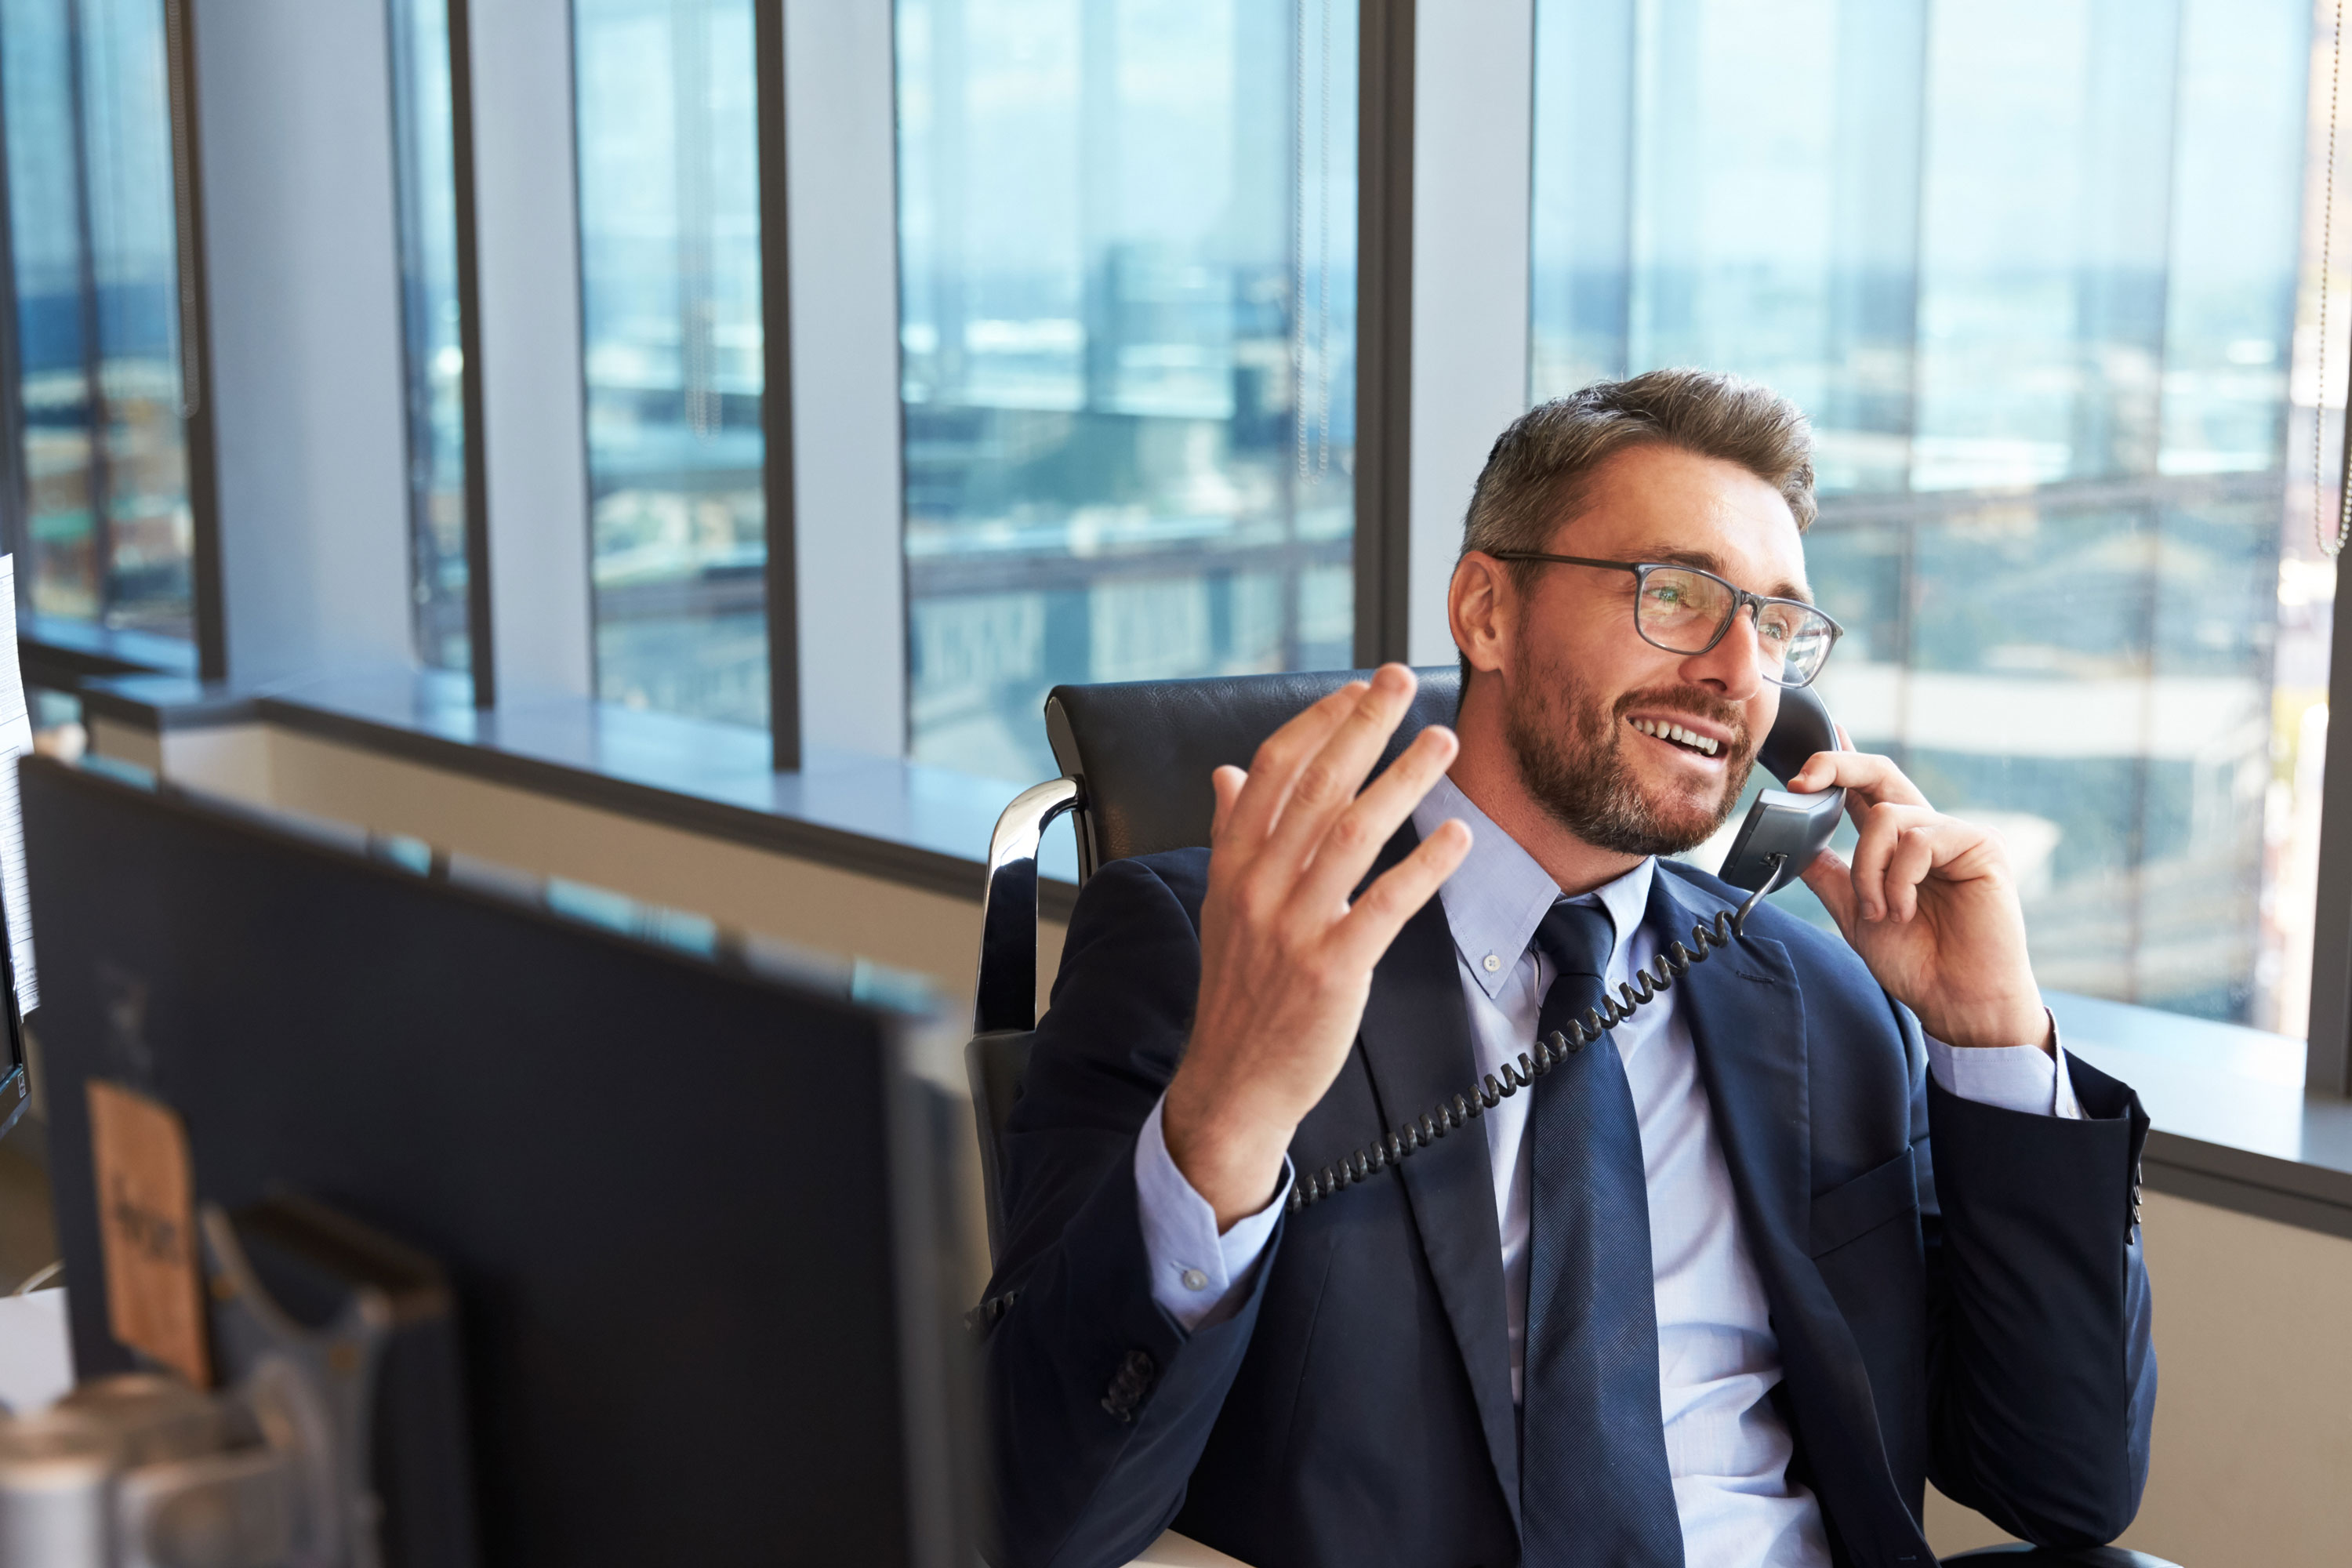 Photo of business man using phone in corporate office